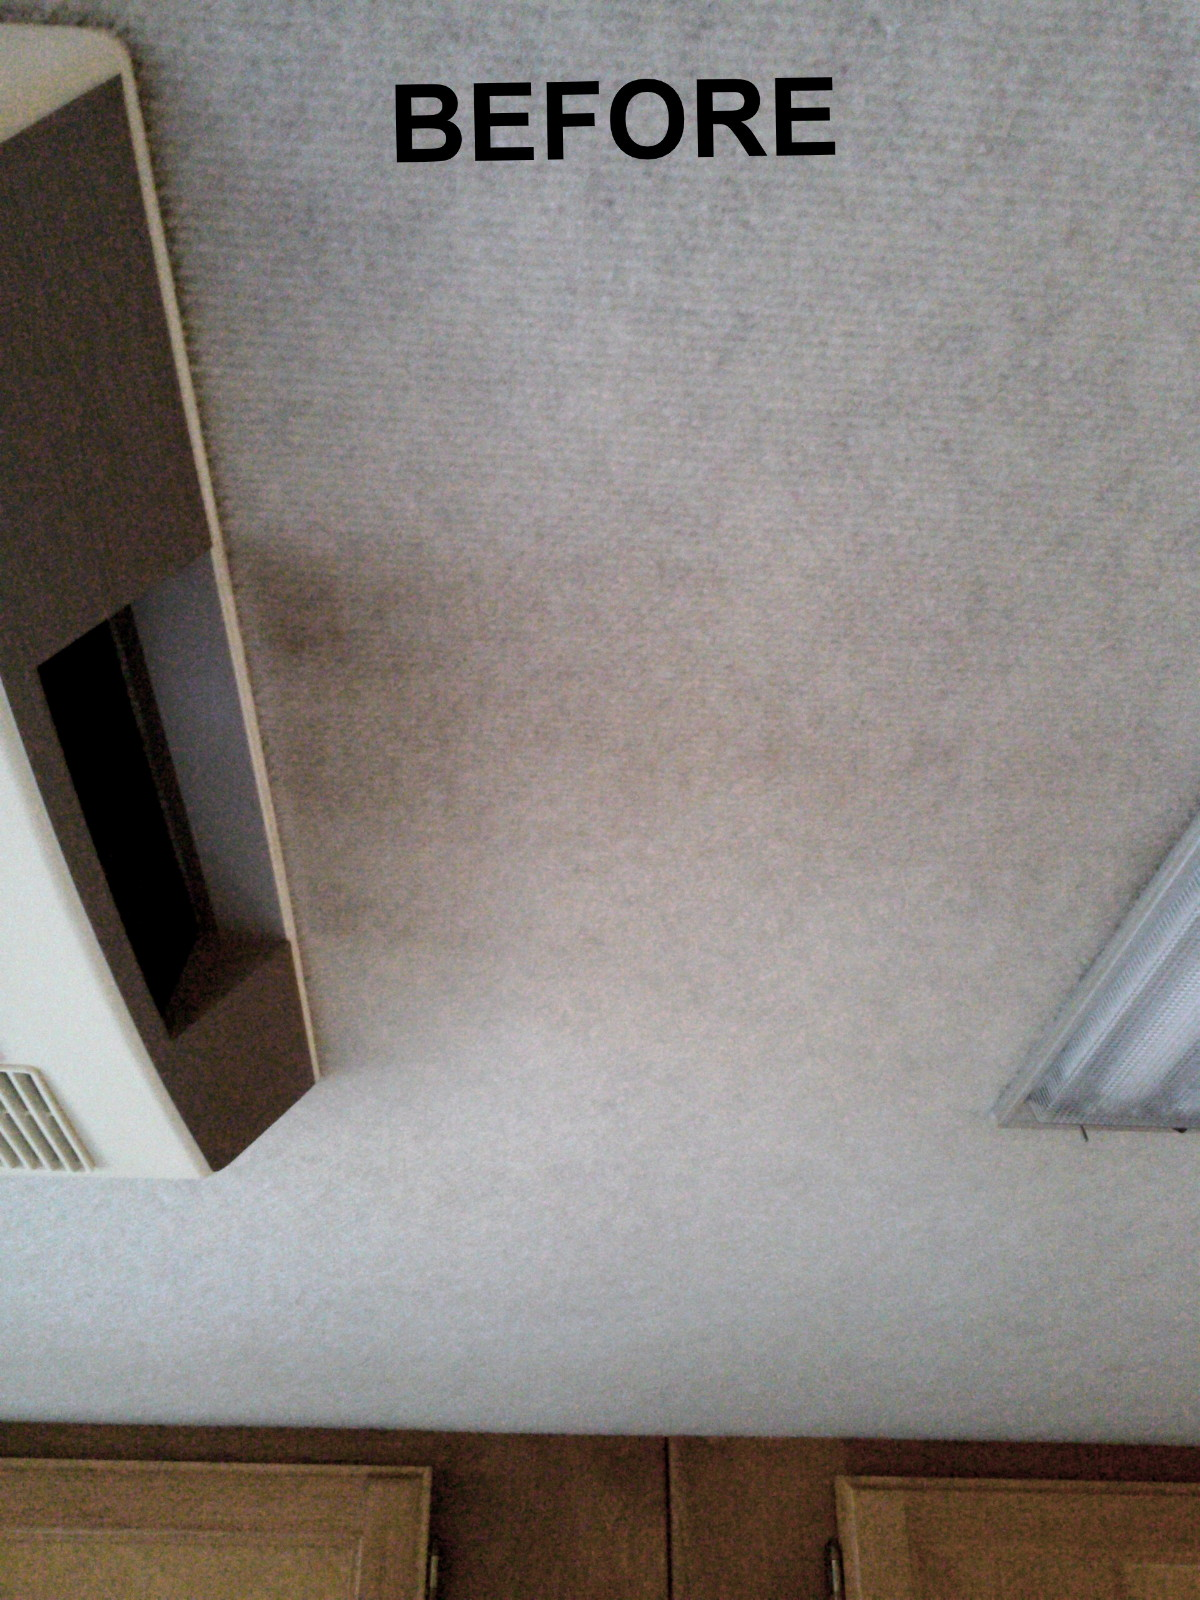 how to clean ceiling from smoke